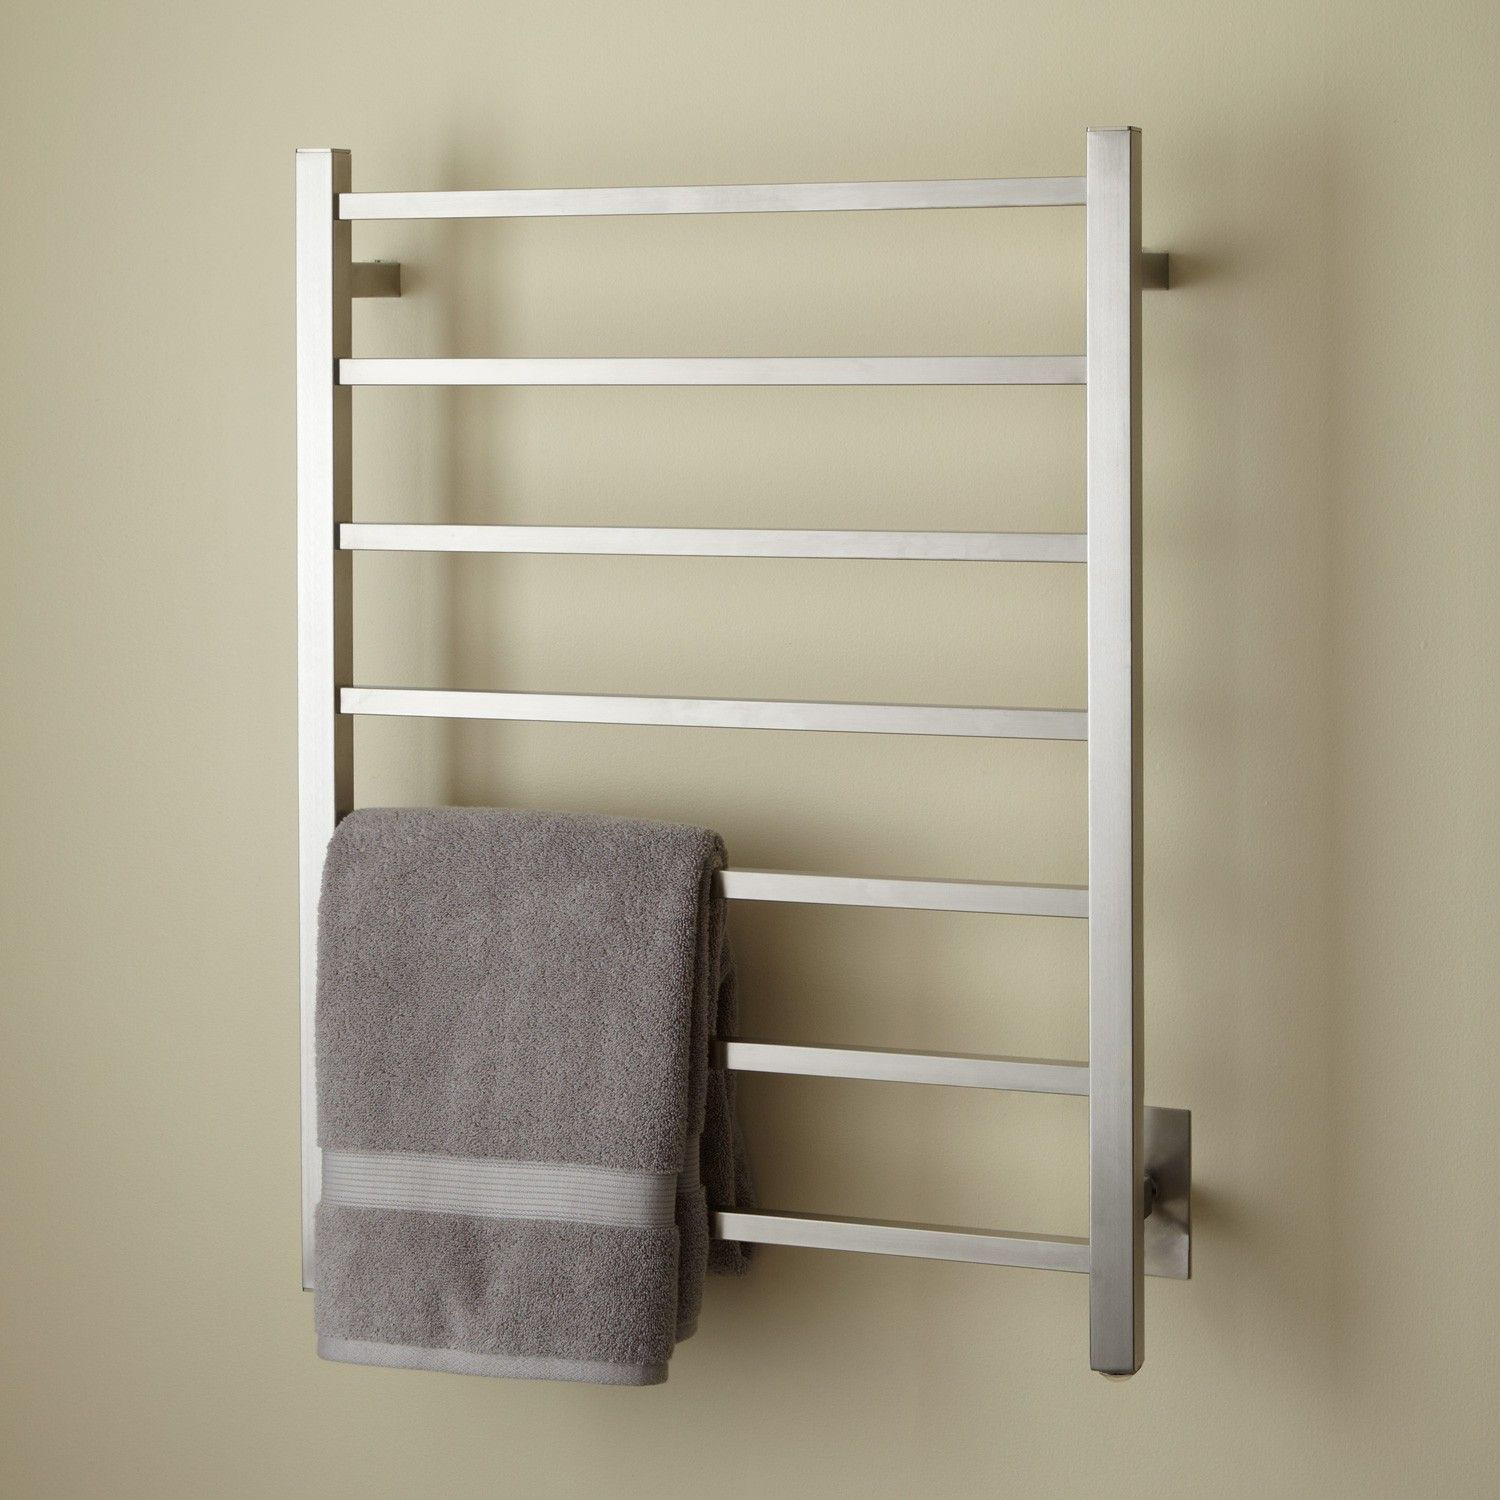 23 Tesni Hardwired Towel Warmer